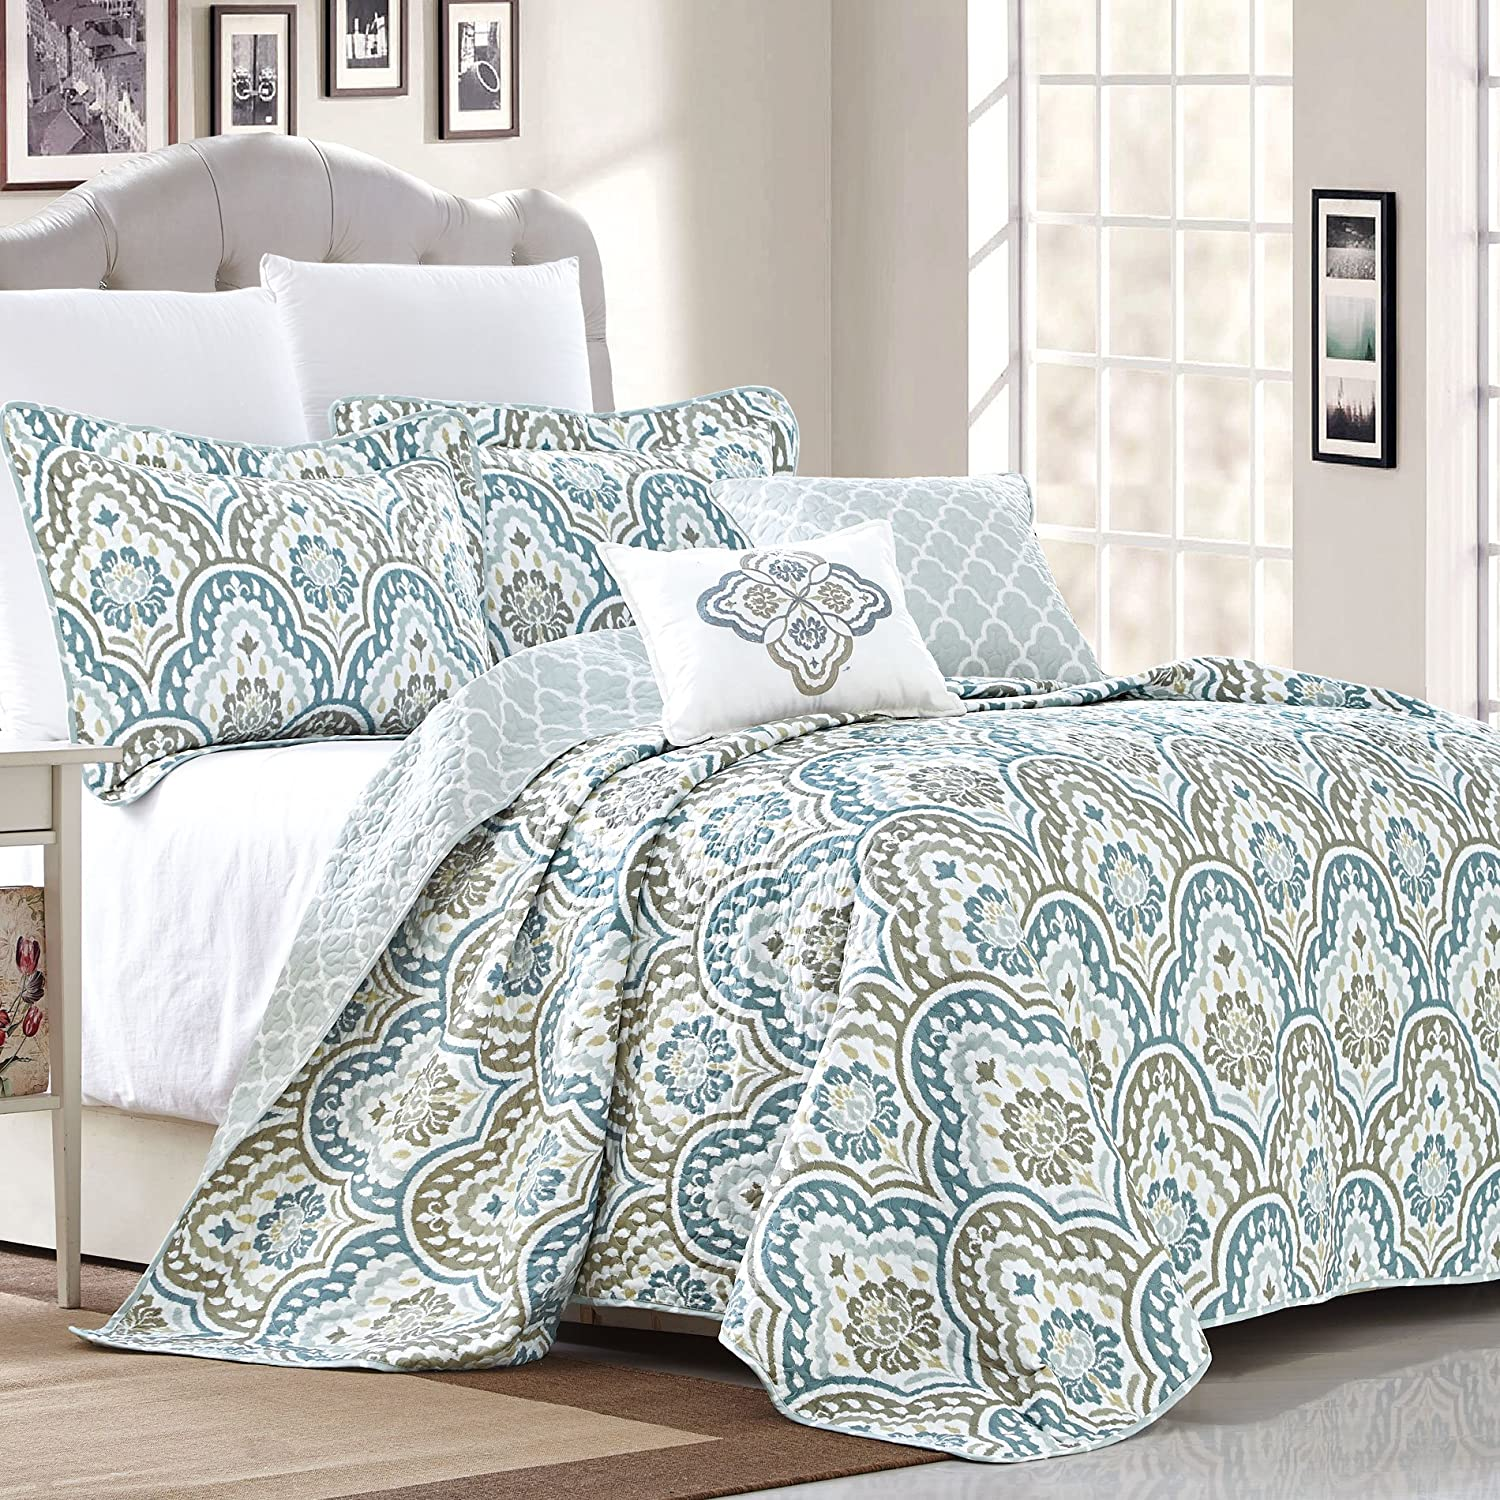 Amazon.com: Serenta Tivoli Ikat Design 5 Piece Teal Aqua Printed Prewashed  Quilted Coverlet Bedspread Bed cover Summer Quilt Blanket with Cotton  Polyester ...